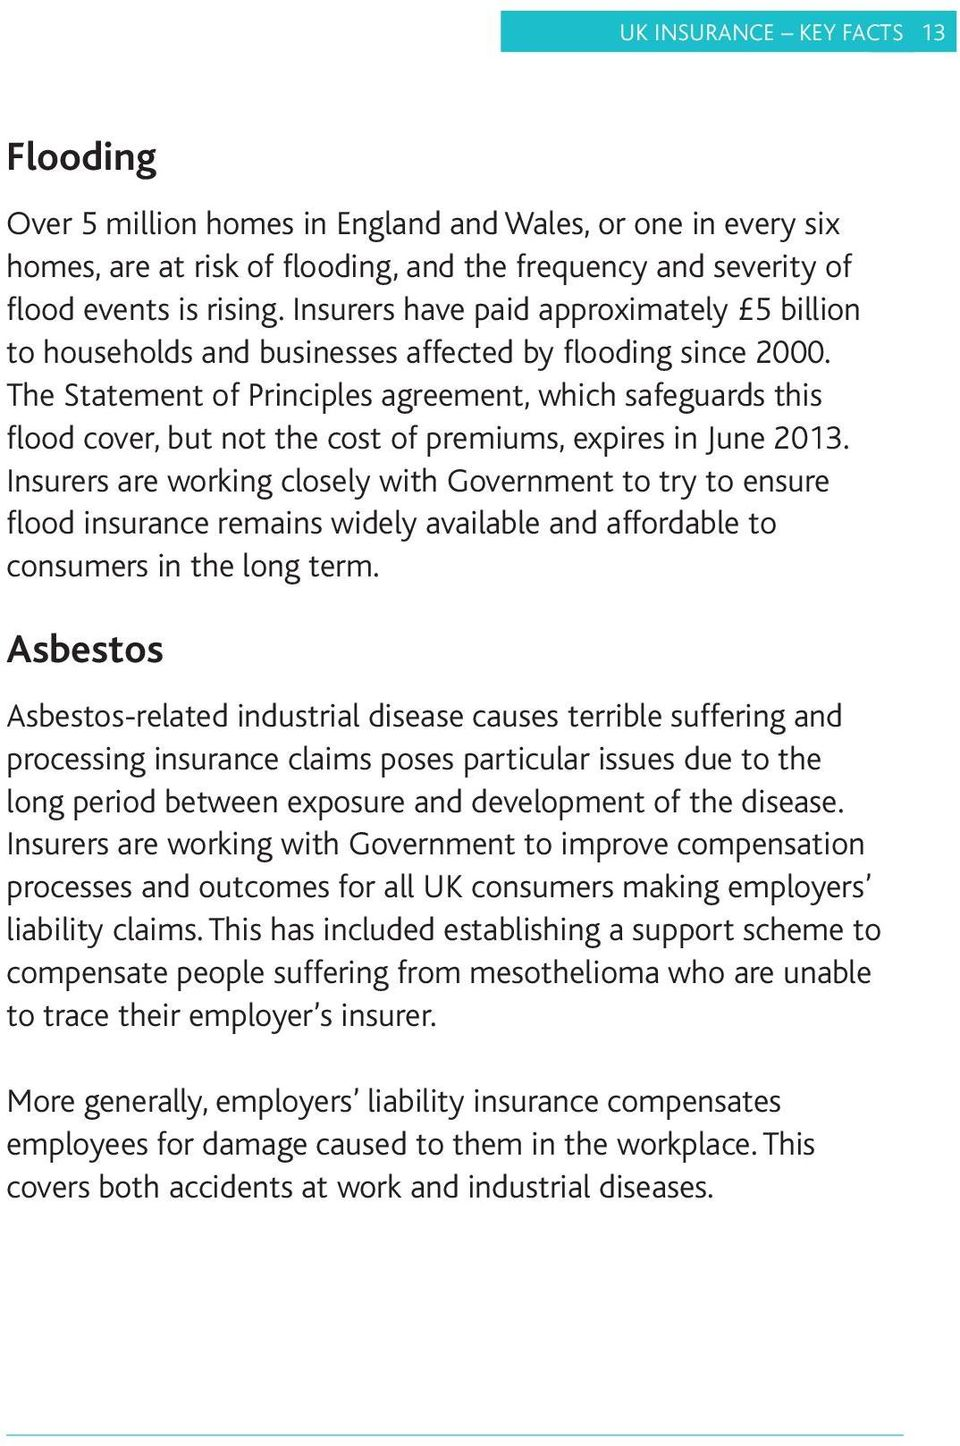 The Statement of Principles agreement, which safeguards this flood cover, but not the cost of premiums, expires in June 2013.